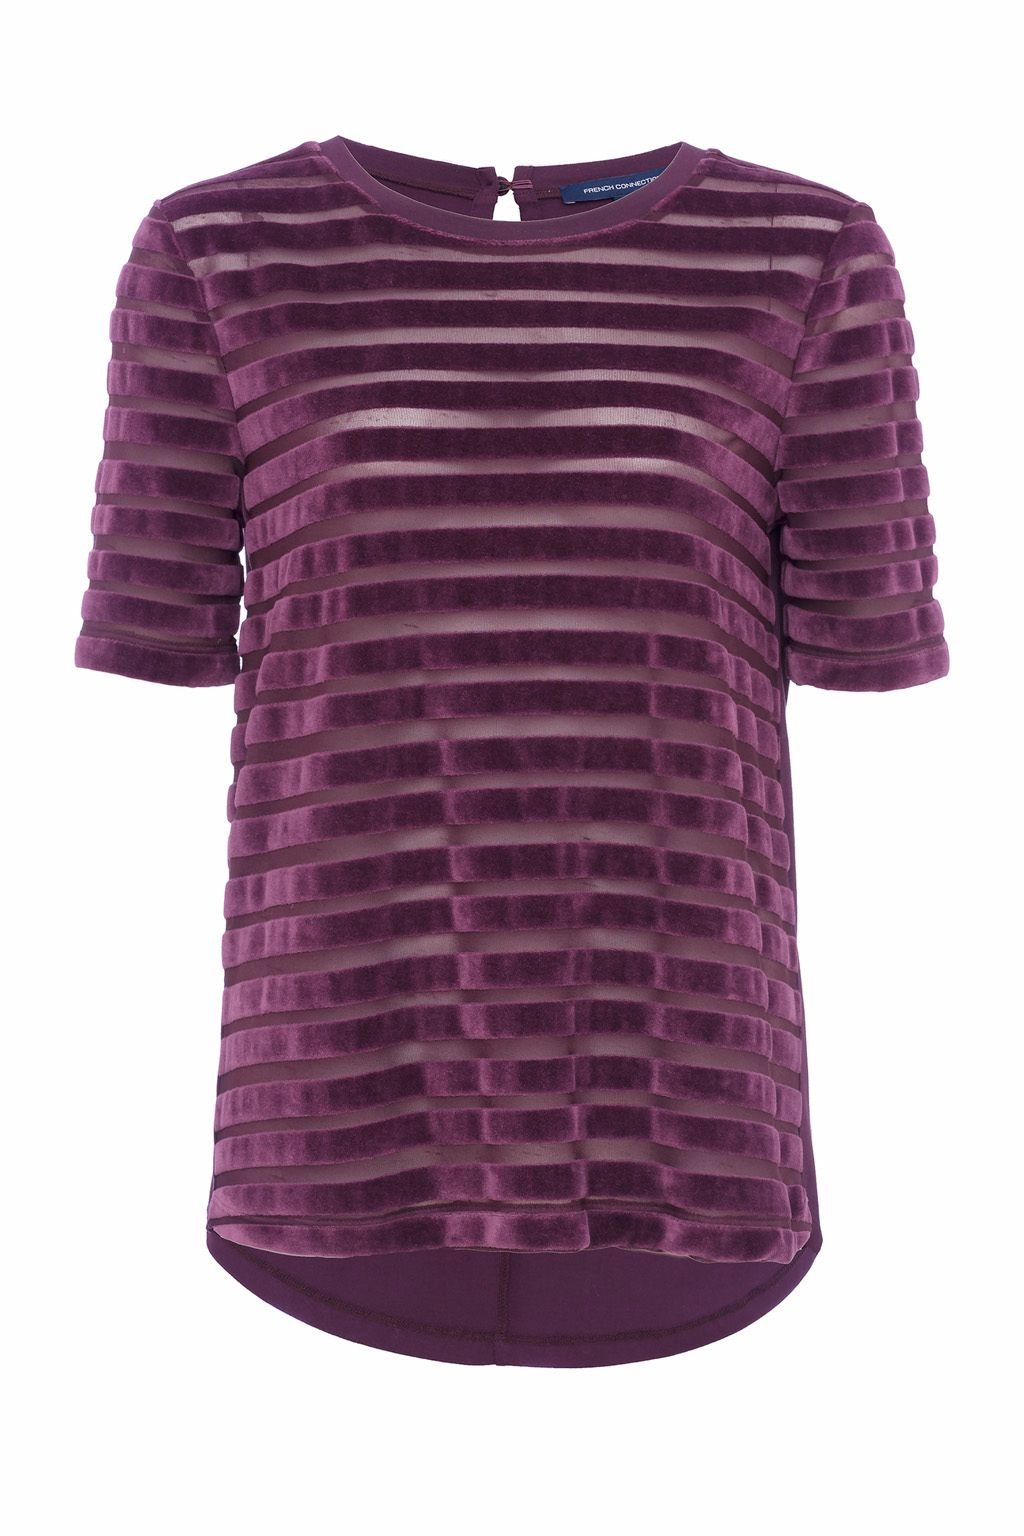 French Connection Bernice Velvet Striped Jersey T-shirt, Dark Purple